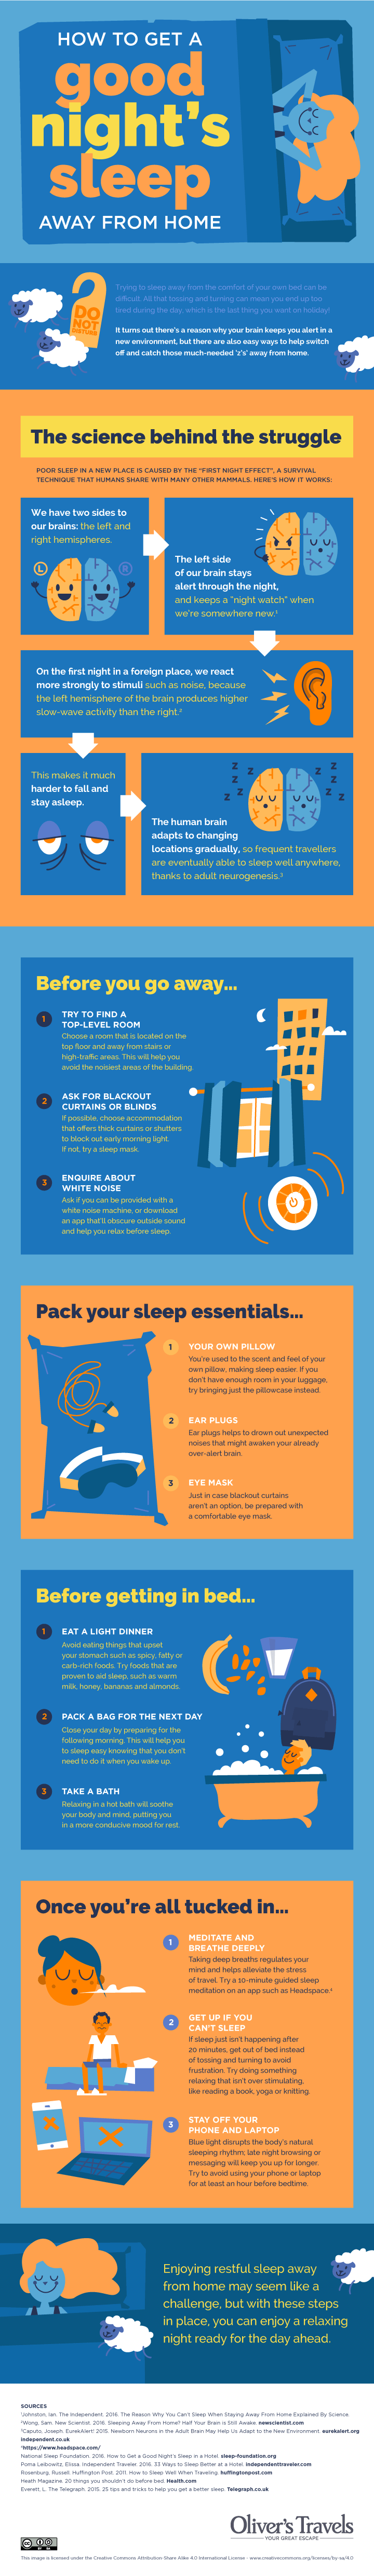 how to sleep away from home